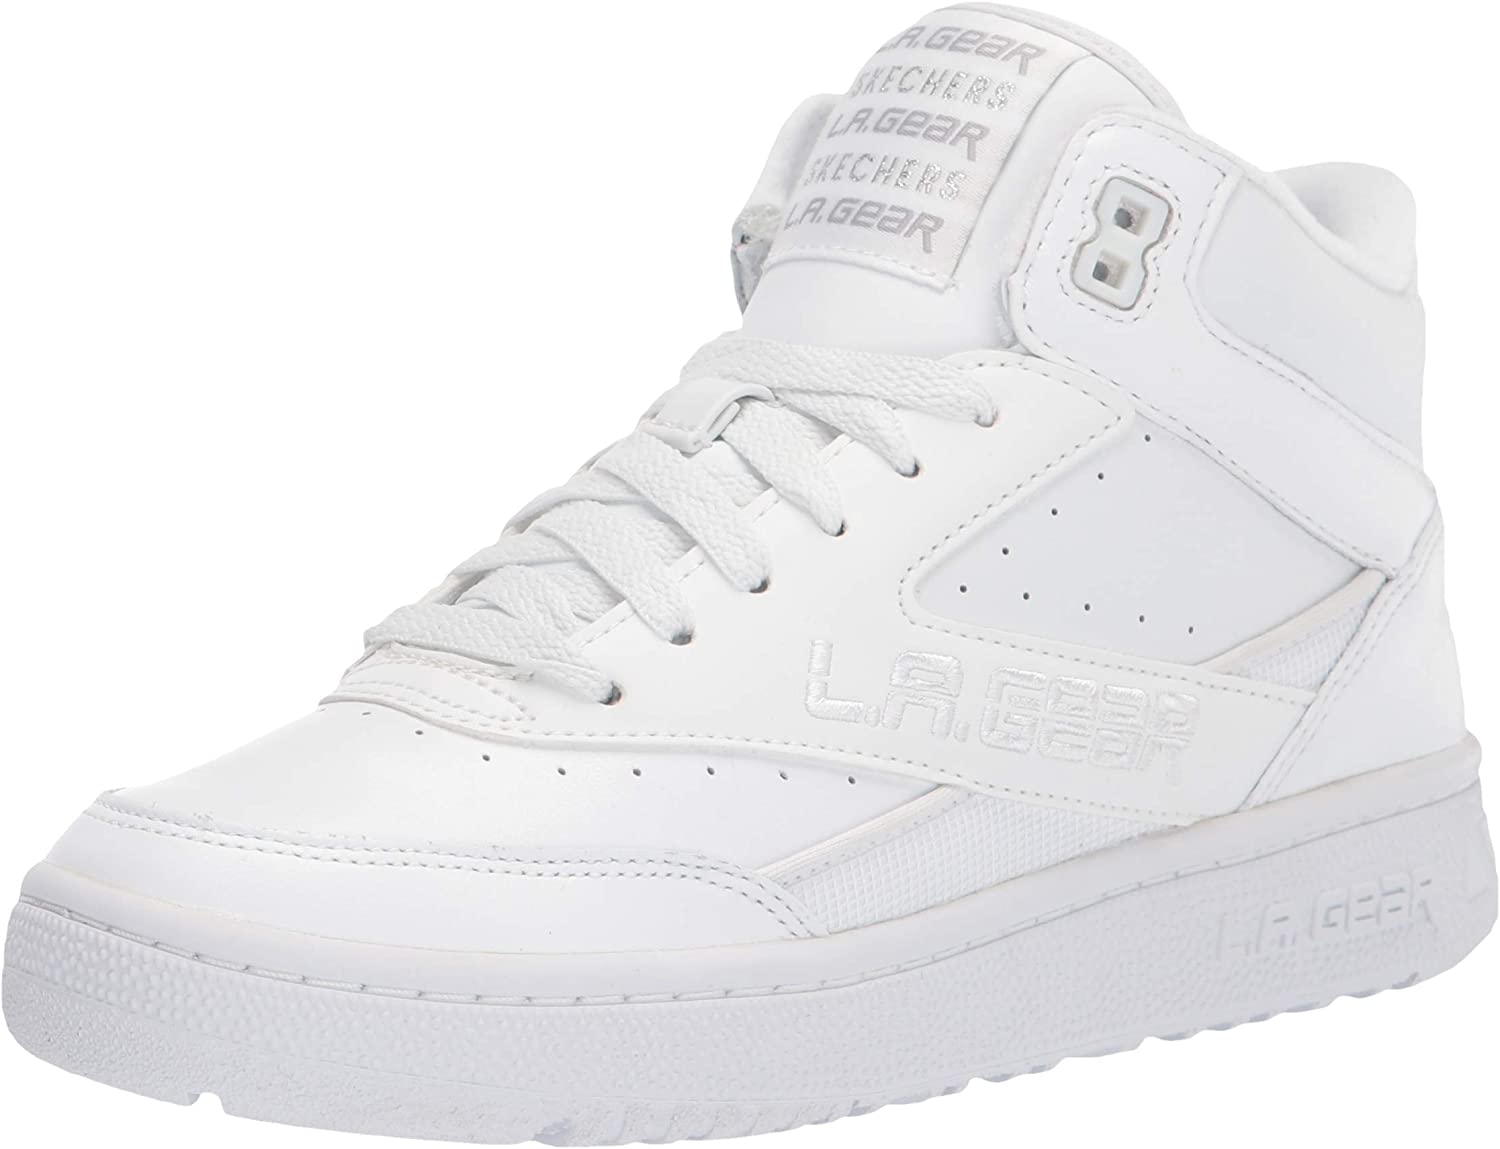 Skechers Womens L.A. Gear-Hot Shots Leather High-Top Fashion Sneakers